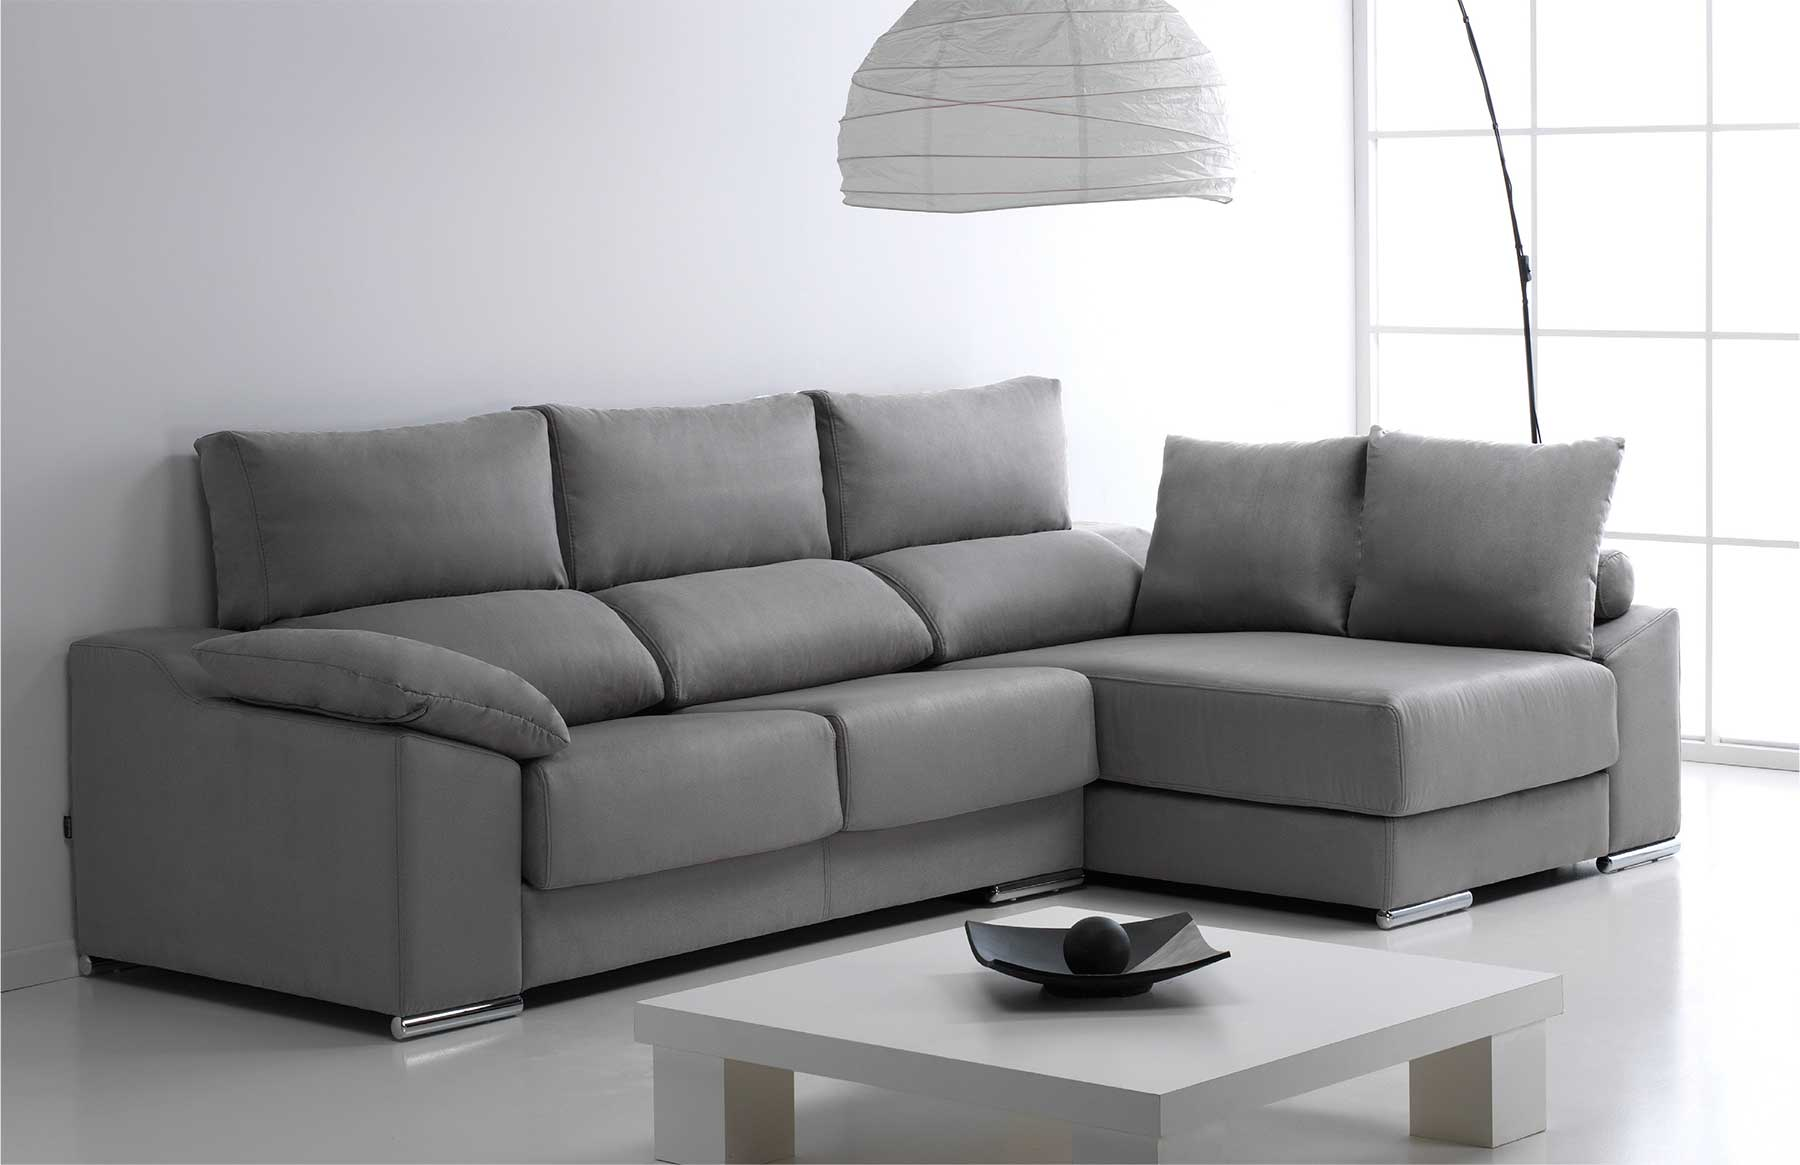 SOFA CHAISELONGUE BOMBAY - R.G